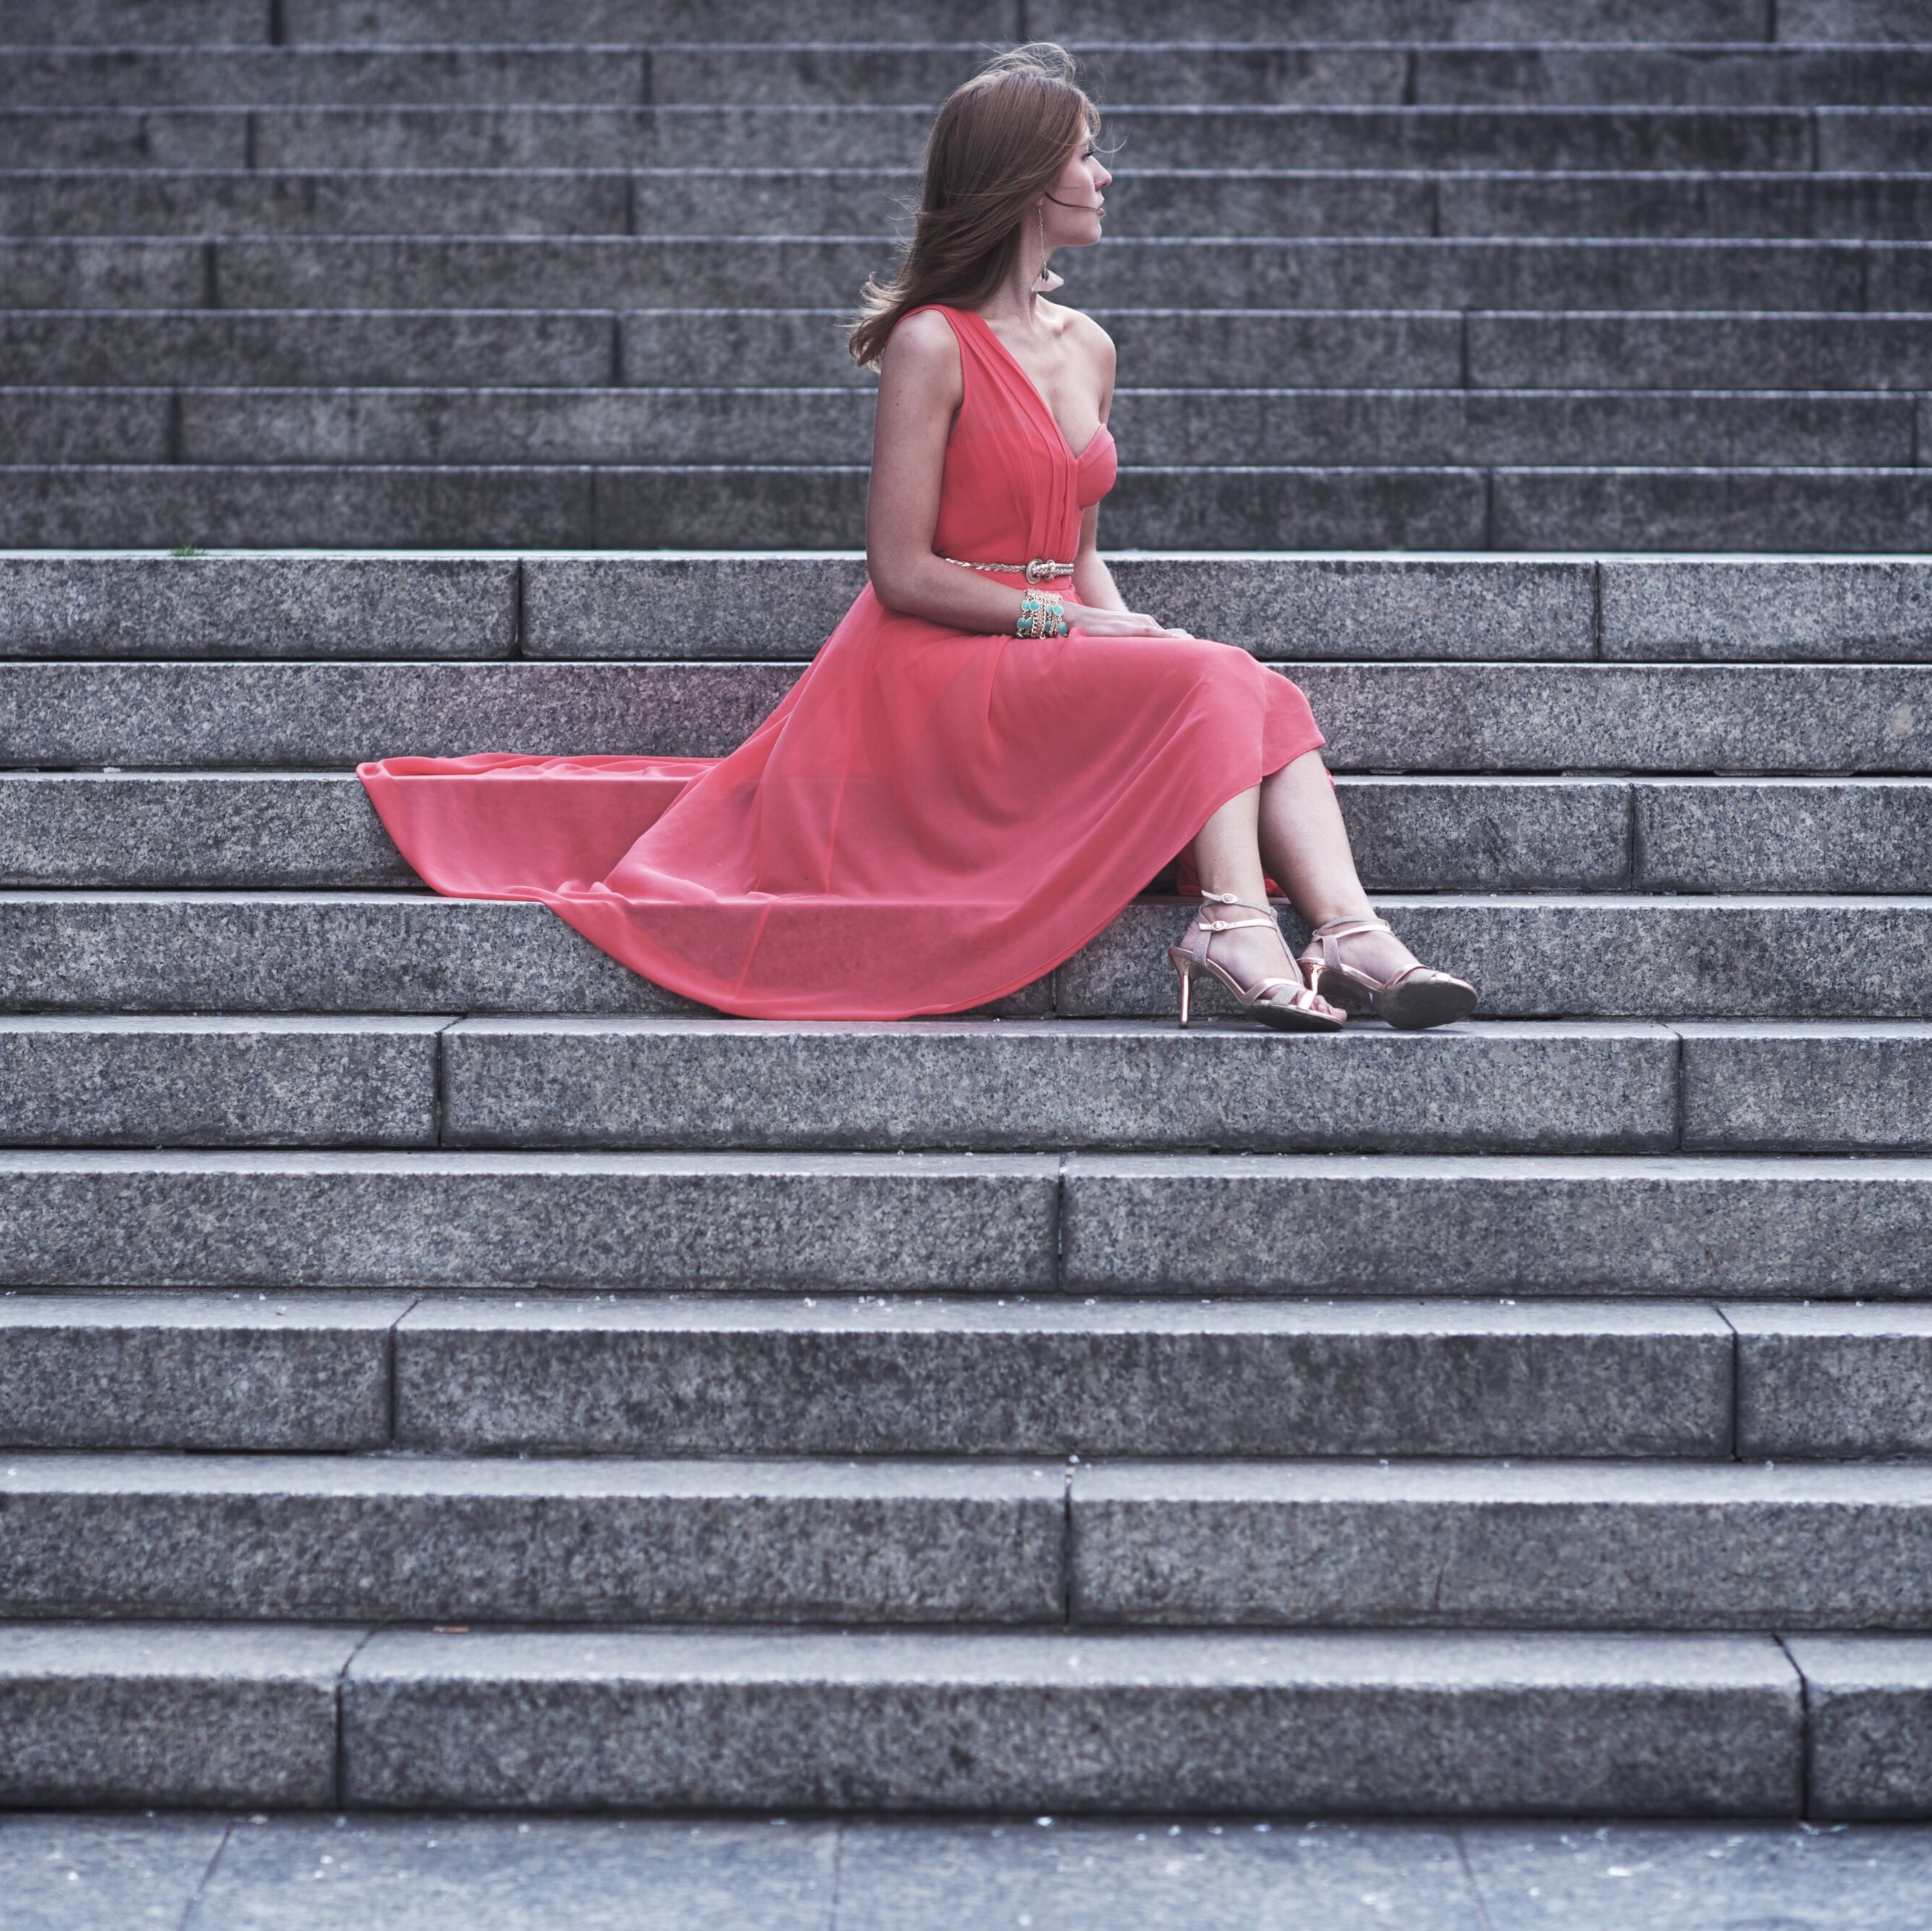 steps, full length, lifestyles, casual clothing, steps and staircases, red, building exterior, staircase, striped, built structure, architecture, standing, brick wall, leisure activity, side view, stairs, young adult, day